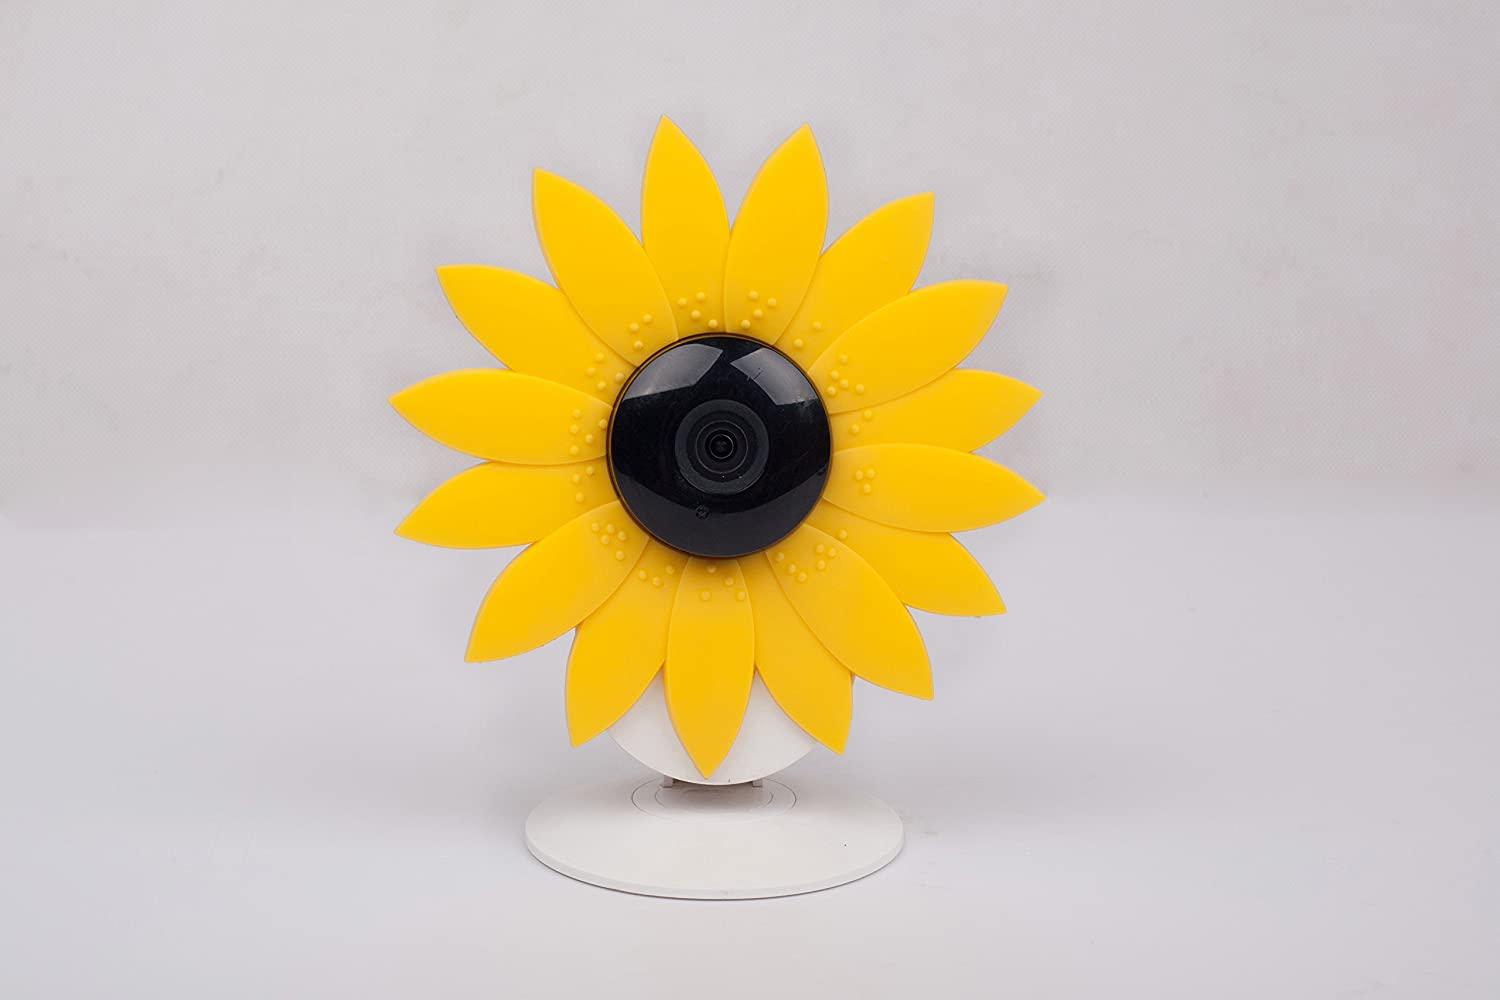 Hide-Your-Cam Yi Home Cam Security Camera Camouflage Cover Skin Case Disguise Protection Decoration Sun Flower Also Fits on Nest Cam